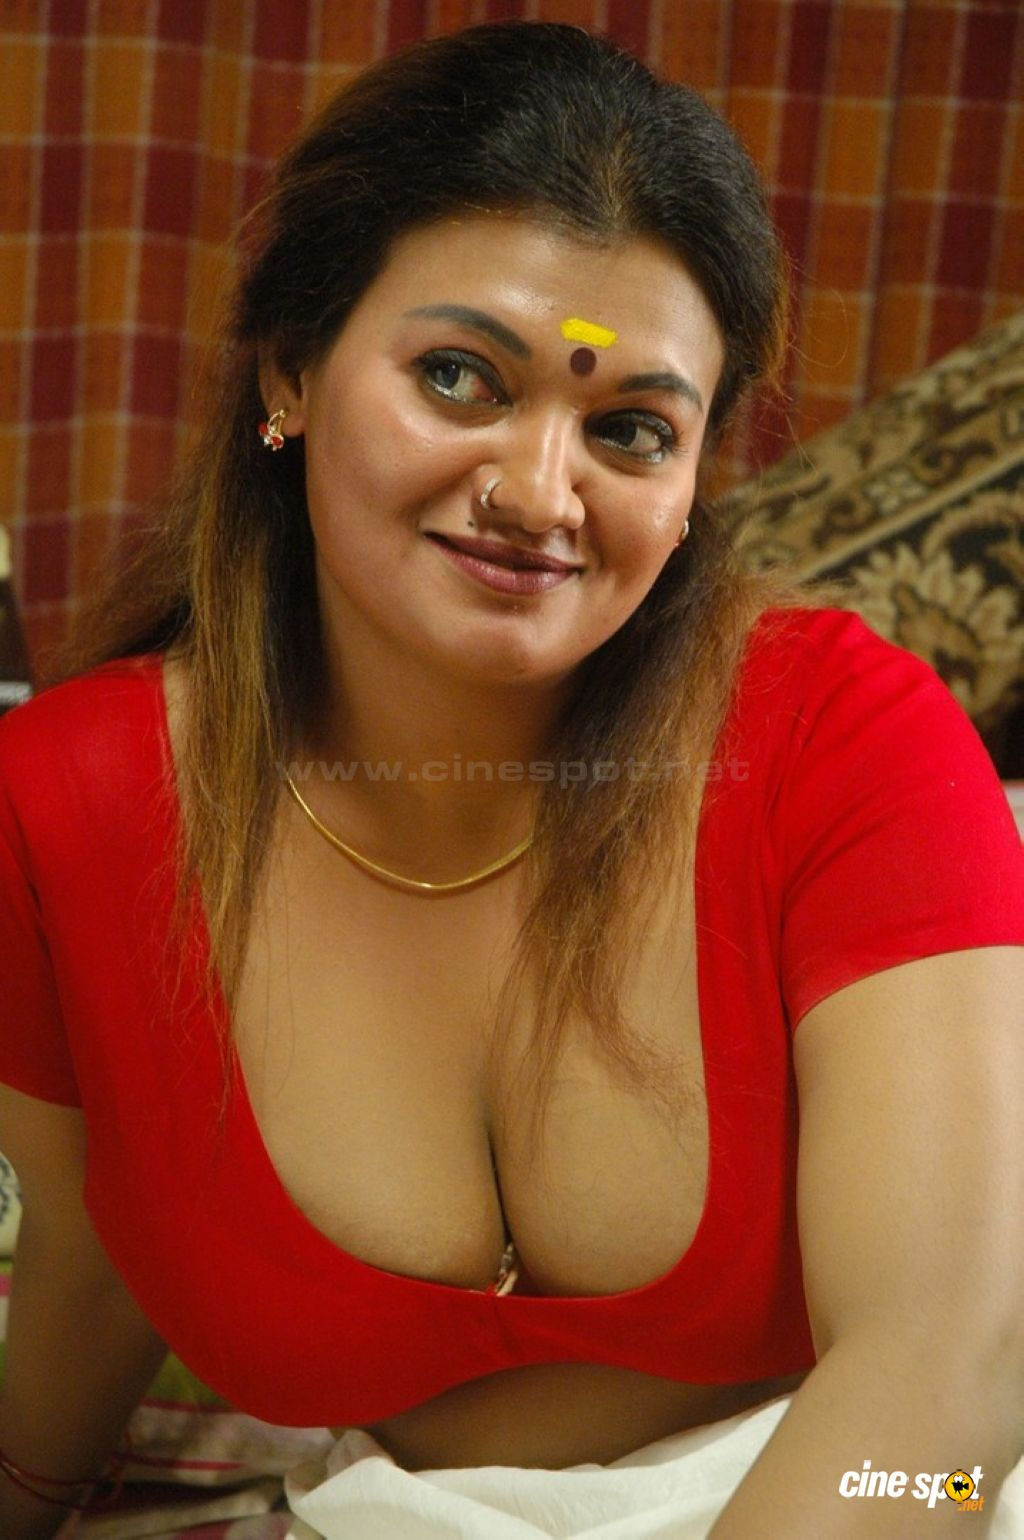 Tamil Movie Actress Hot Sexy Spicy Masala Pics